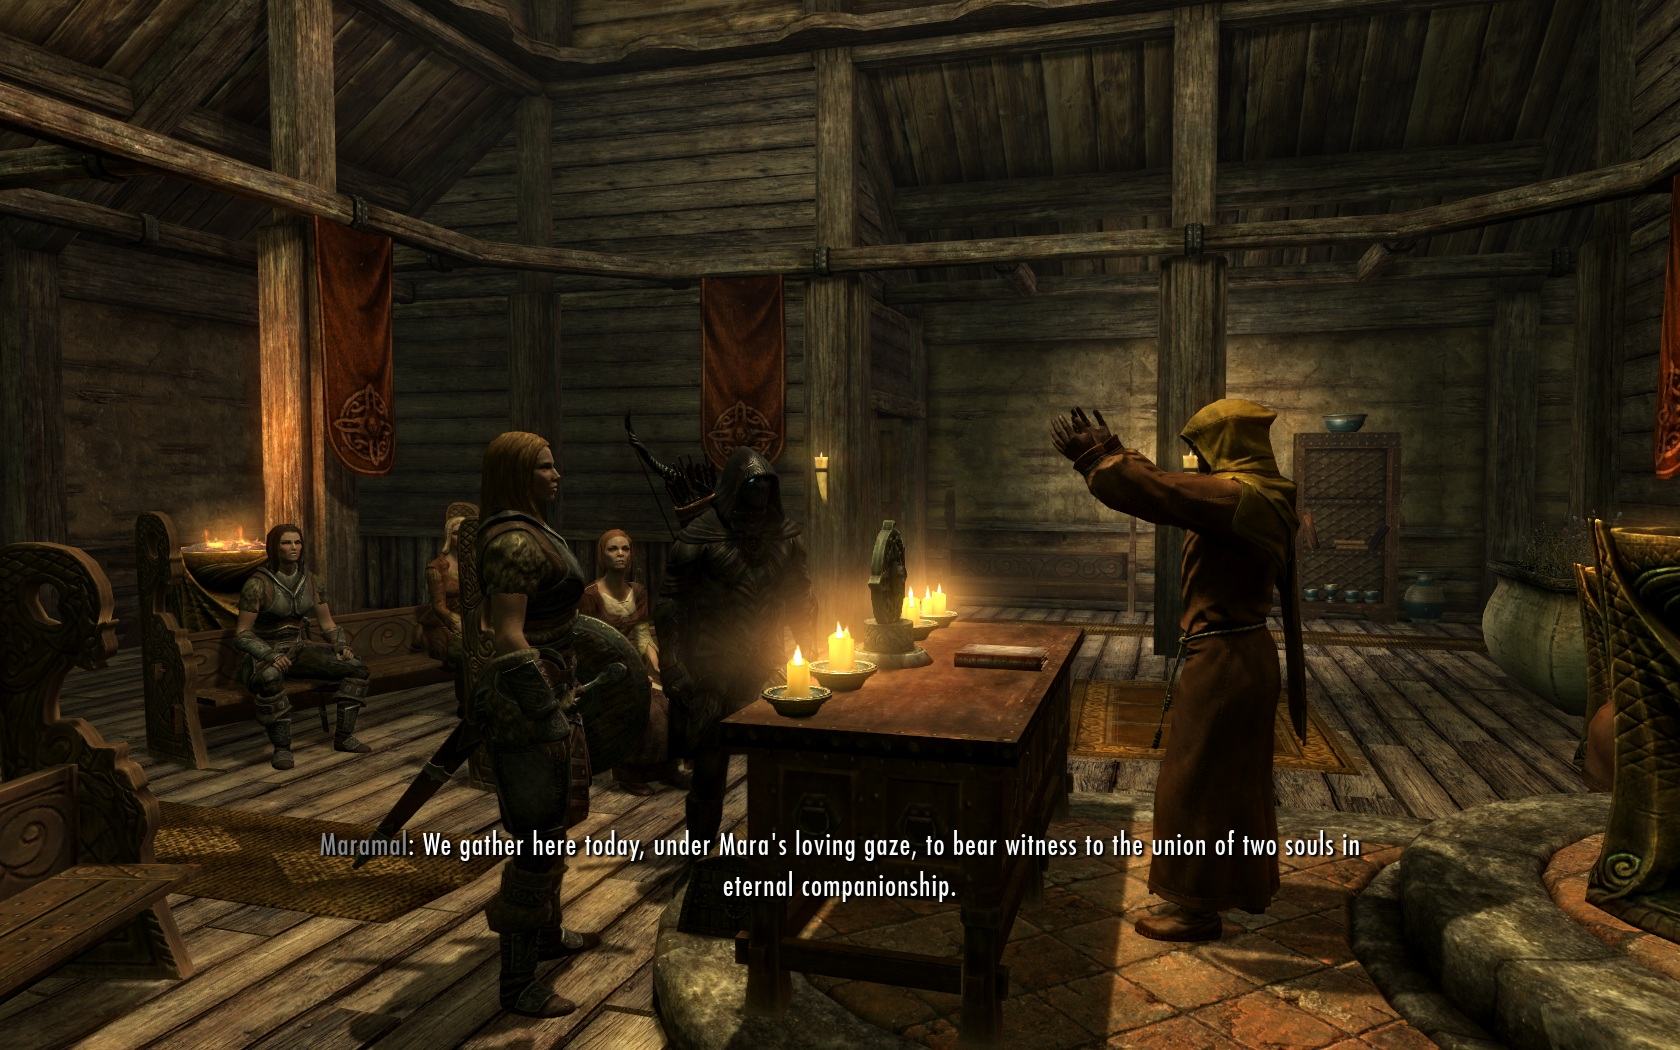 Skyrim: how to get married and achieve social status 26